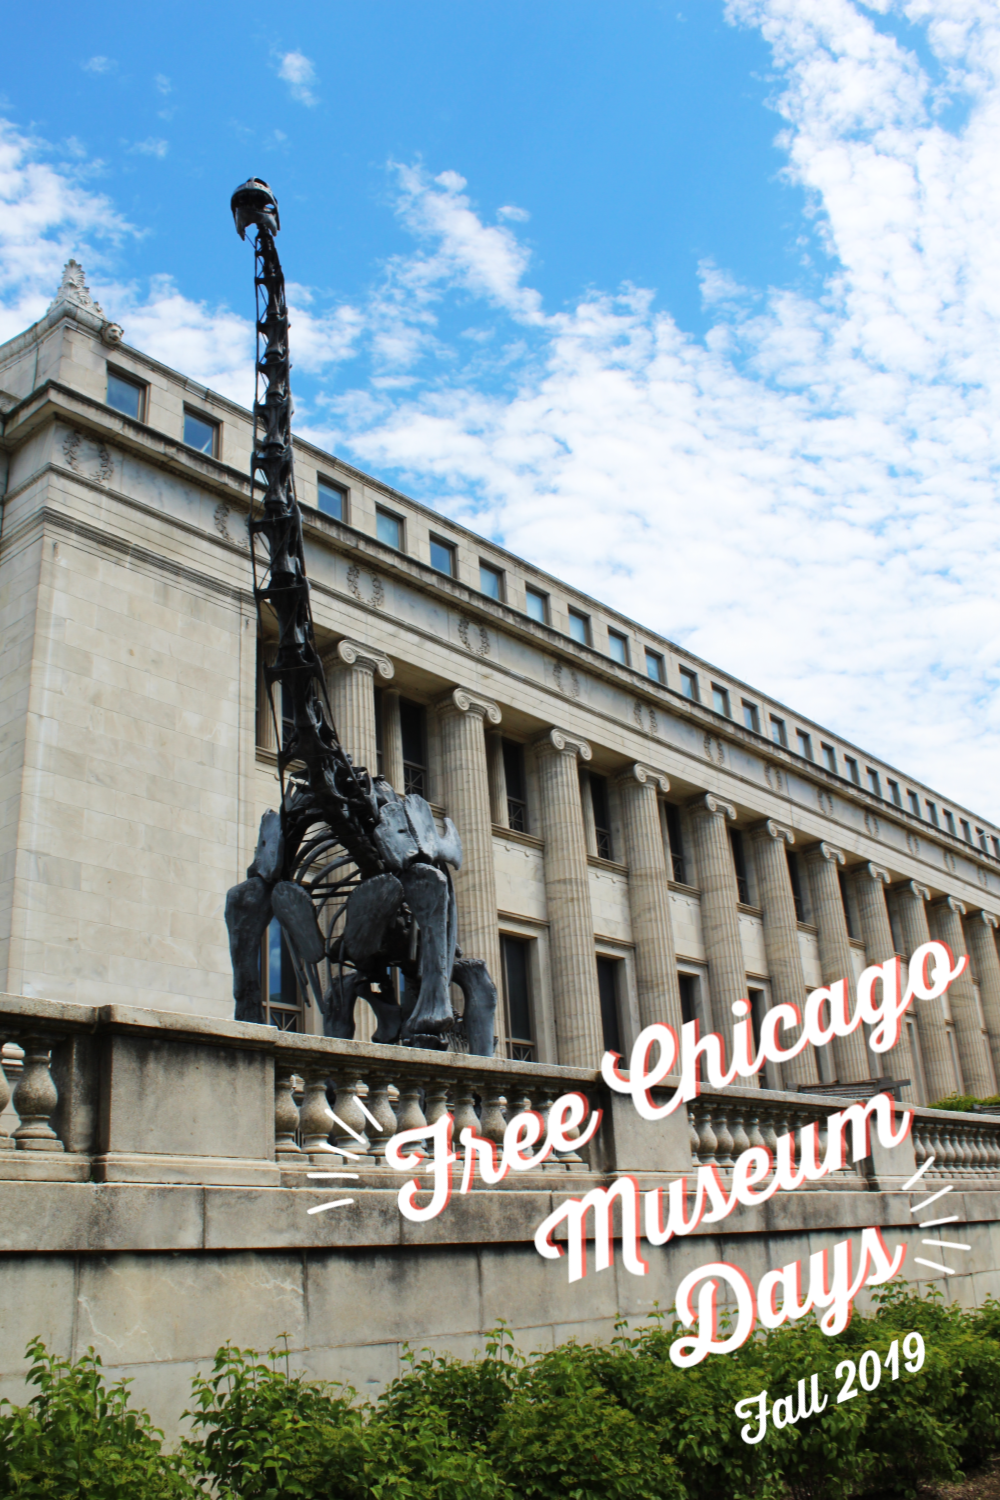 Free Chicago Museum Days Fall 2019 Chicago museums, Best